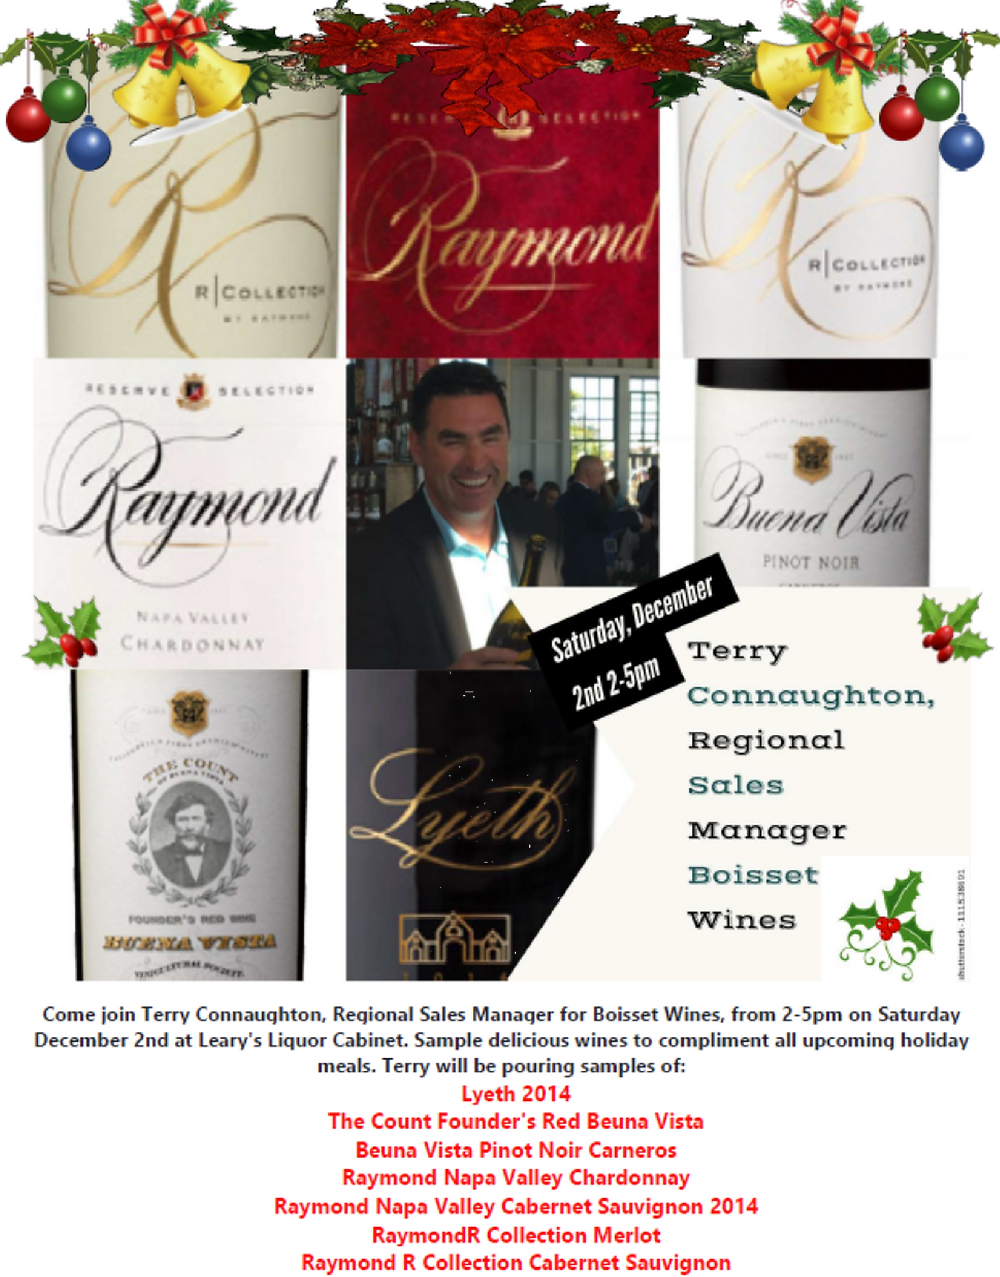 Terry Connaughton, Regional Sales Manager Boisset Wines